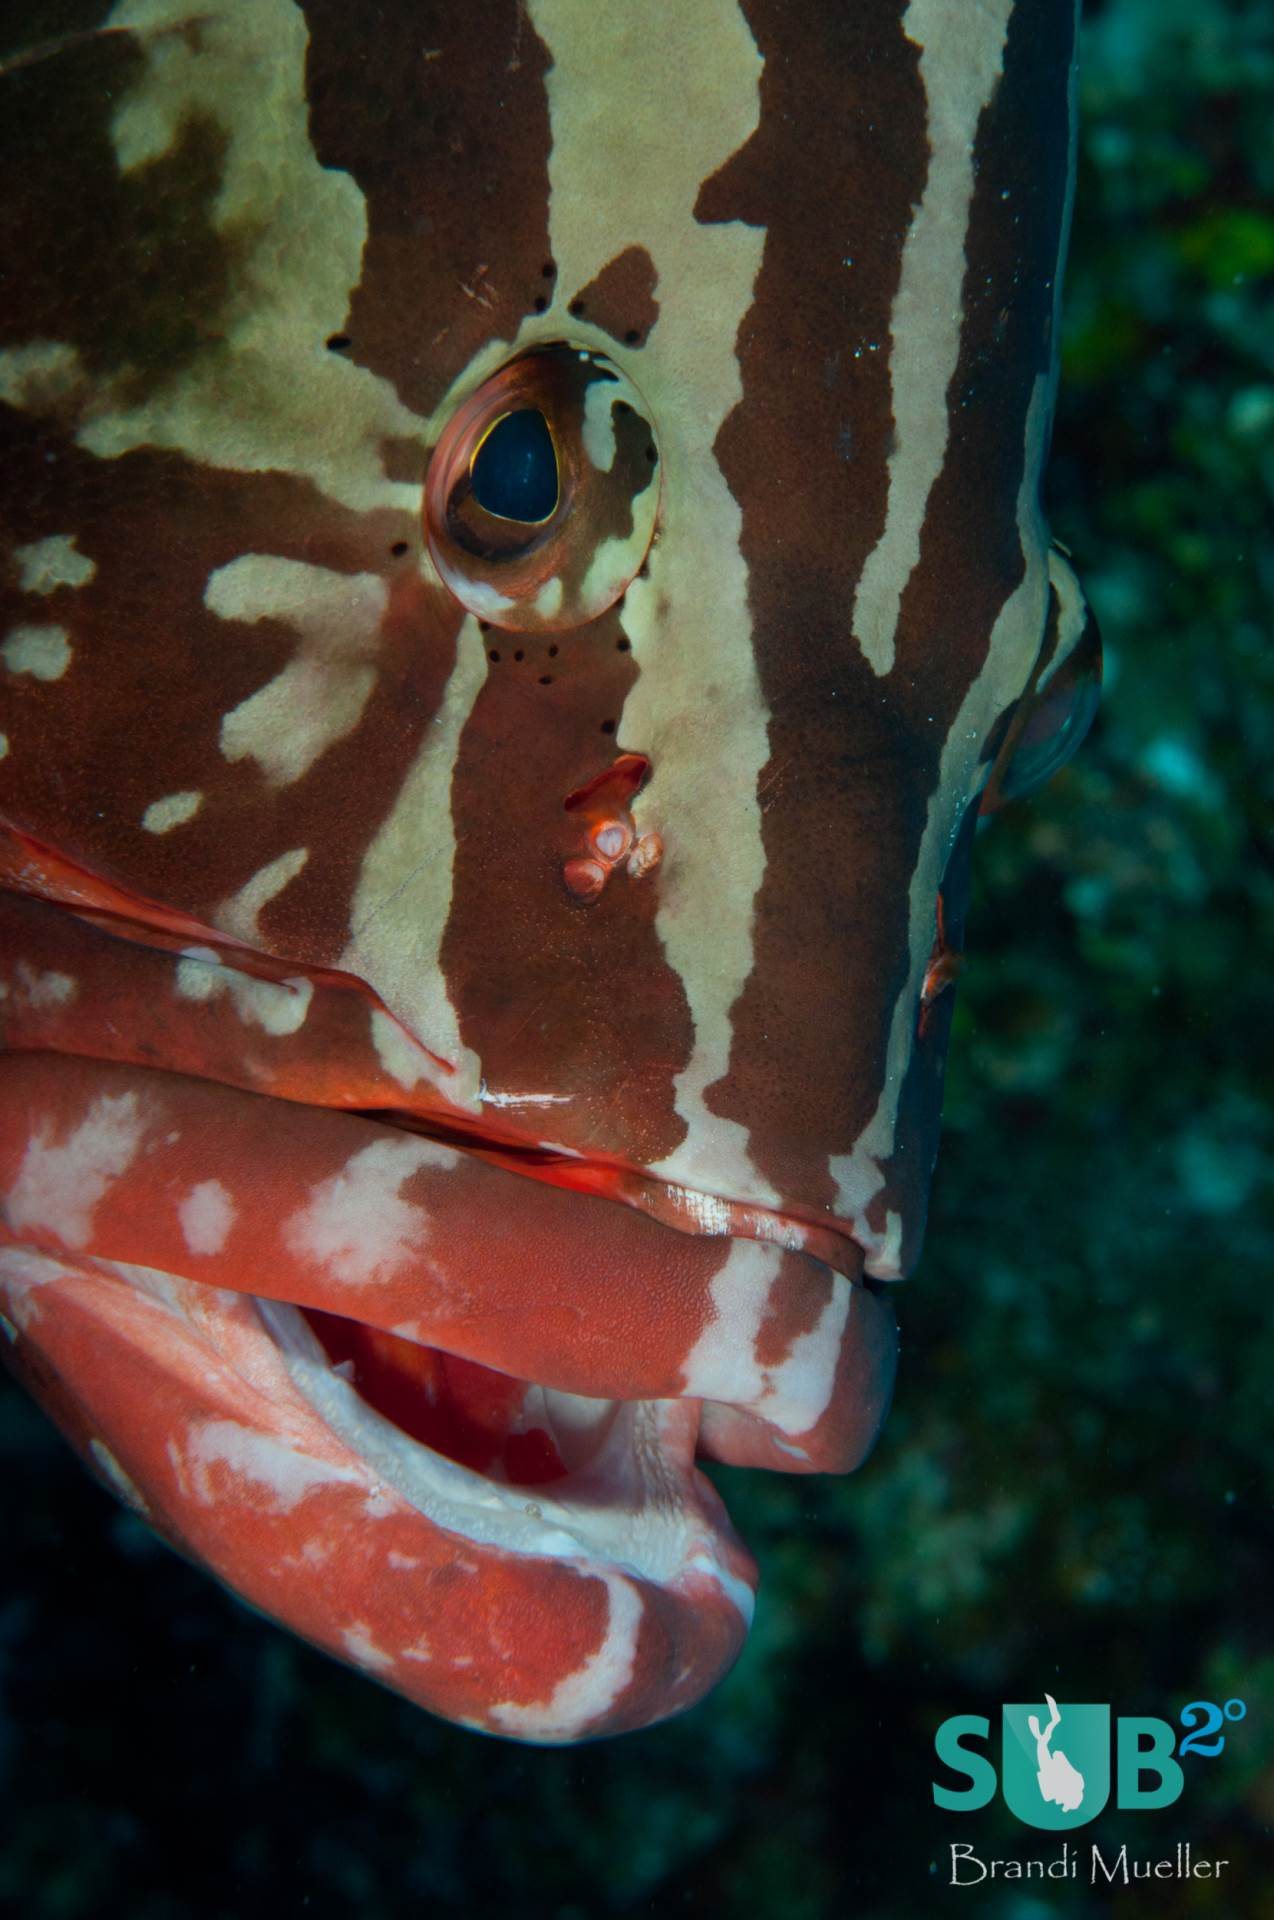 A friendly Nassau Grouper poses for photos at Rock Garden, Turks and Caicos.